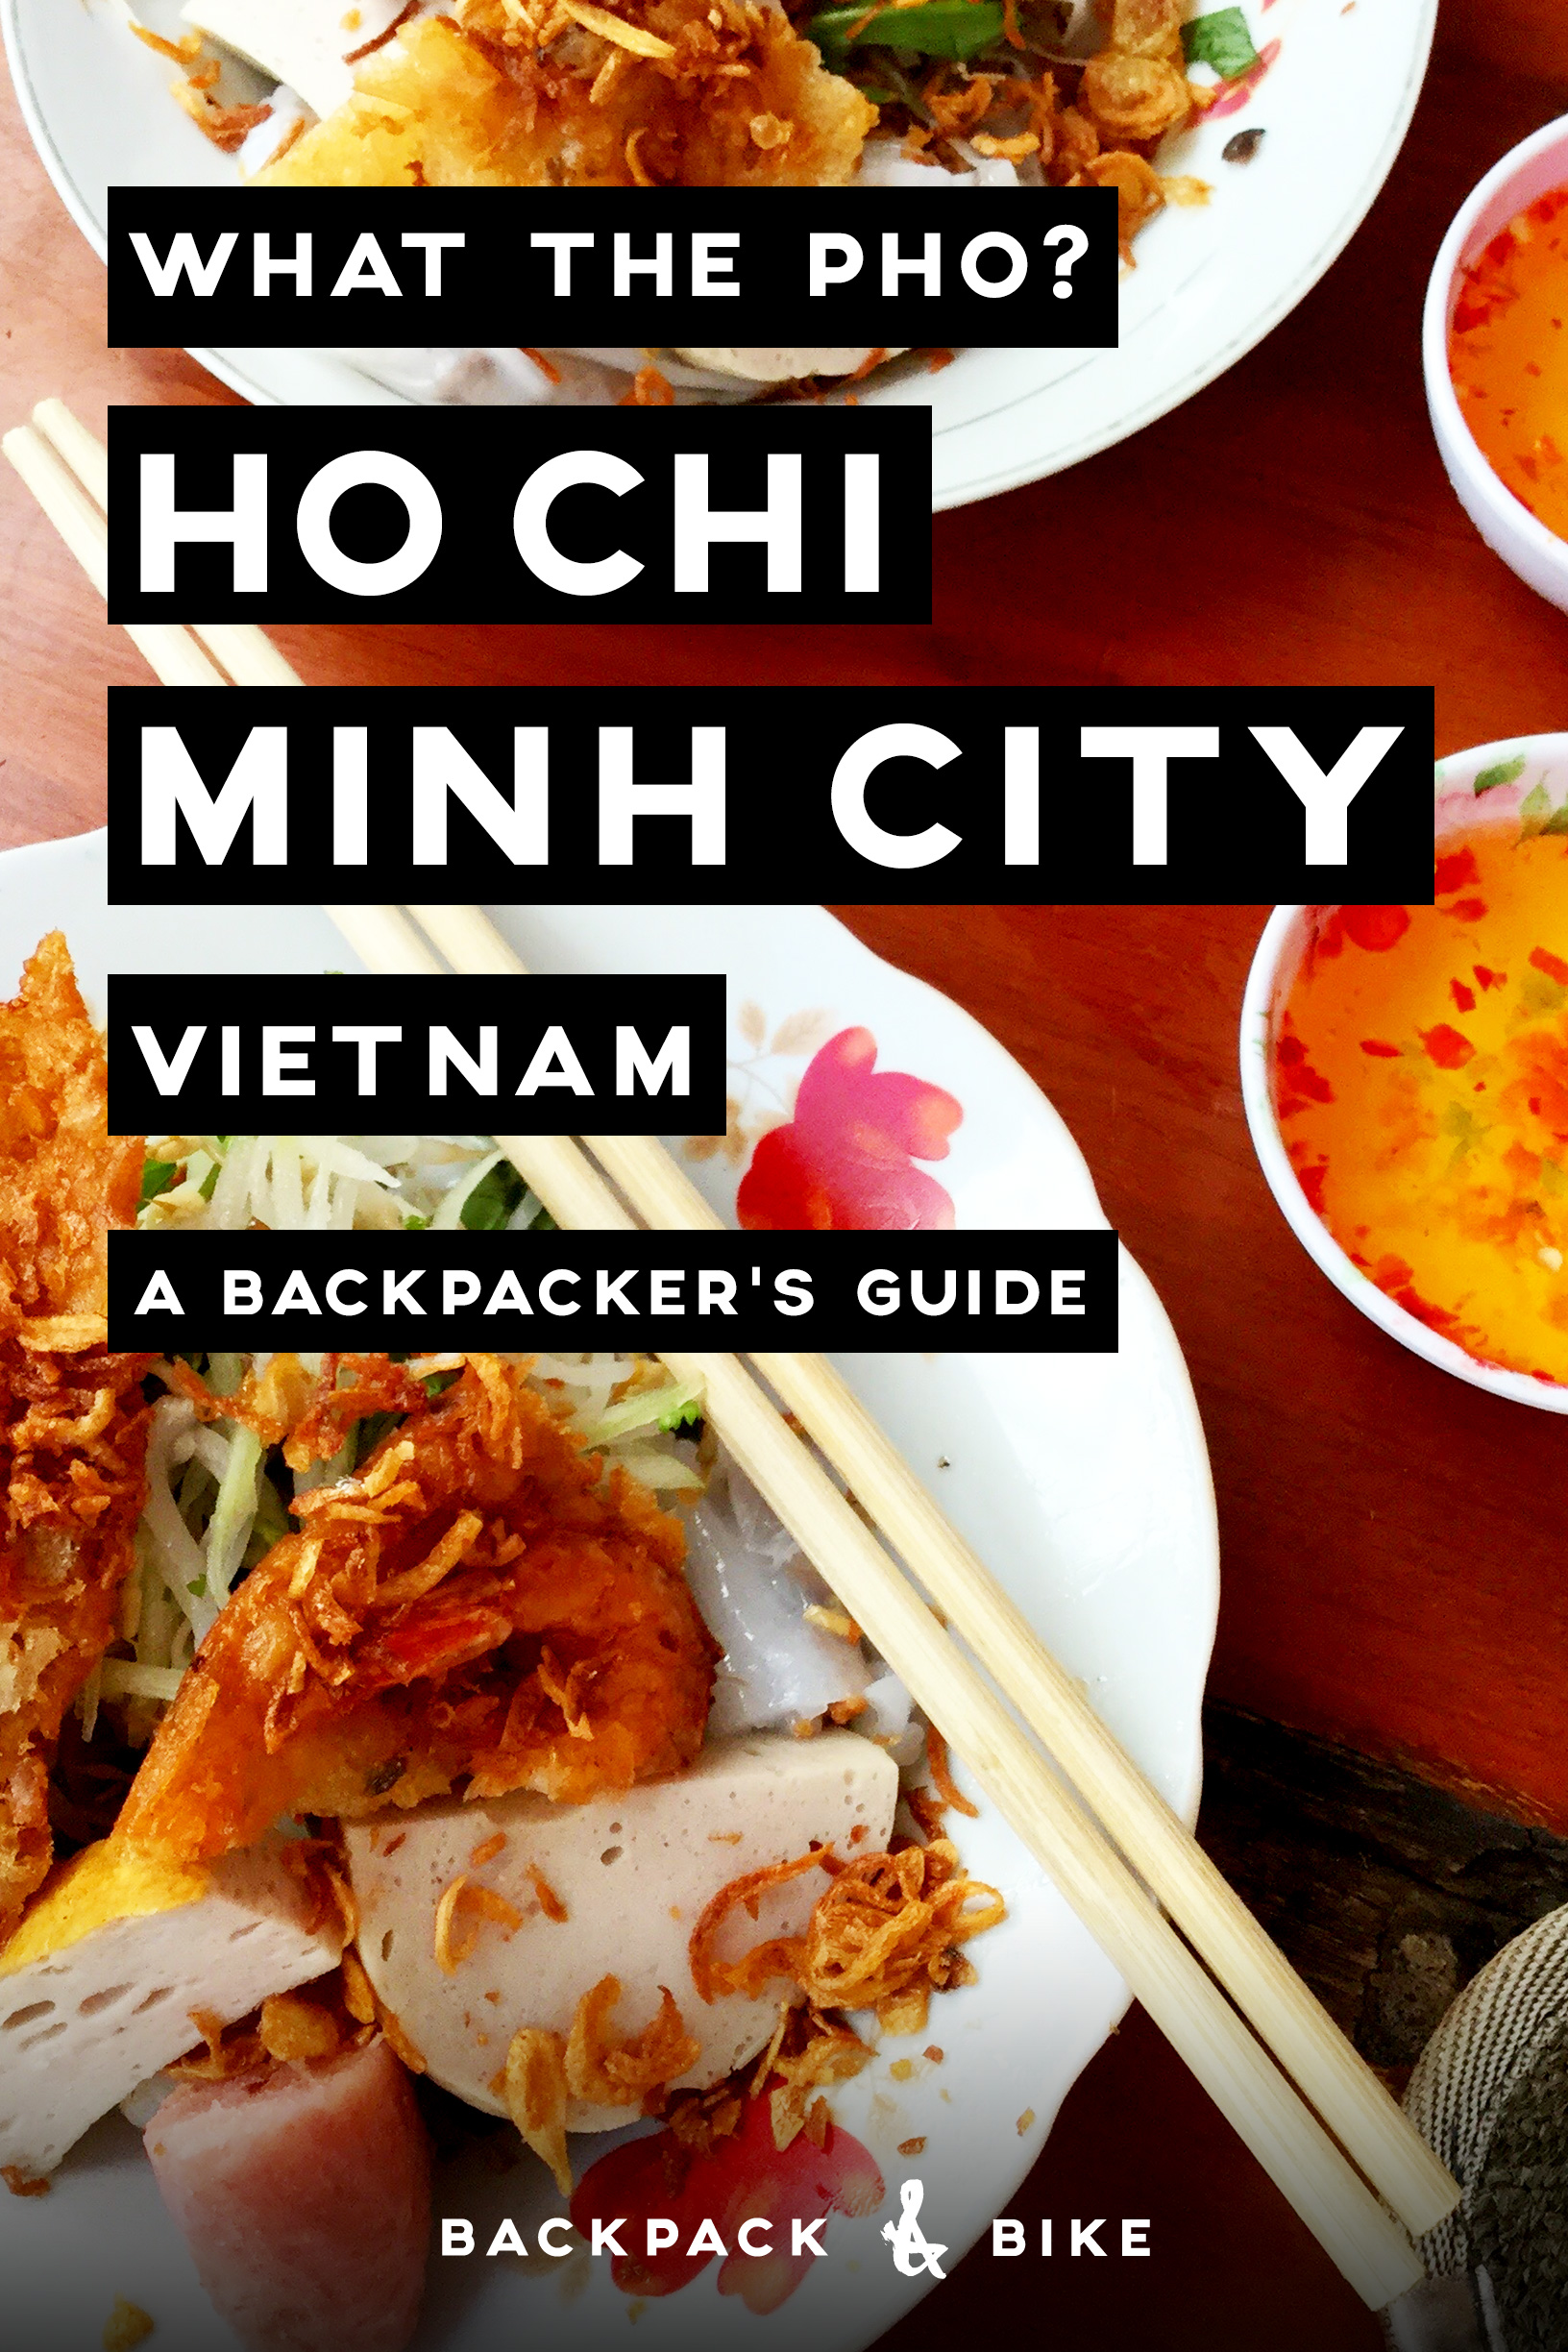 Ho Chi Minh City   What the pho?   A backpacker's guide   What are the must sees, dos, and eats in this busy city? Pin to read later!